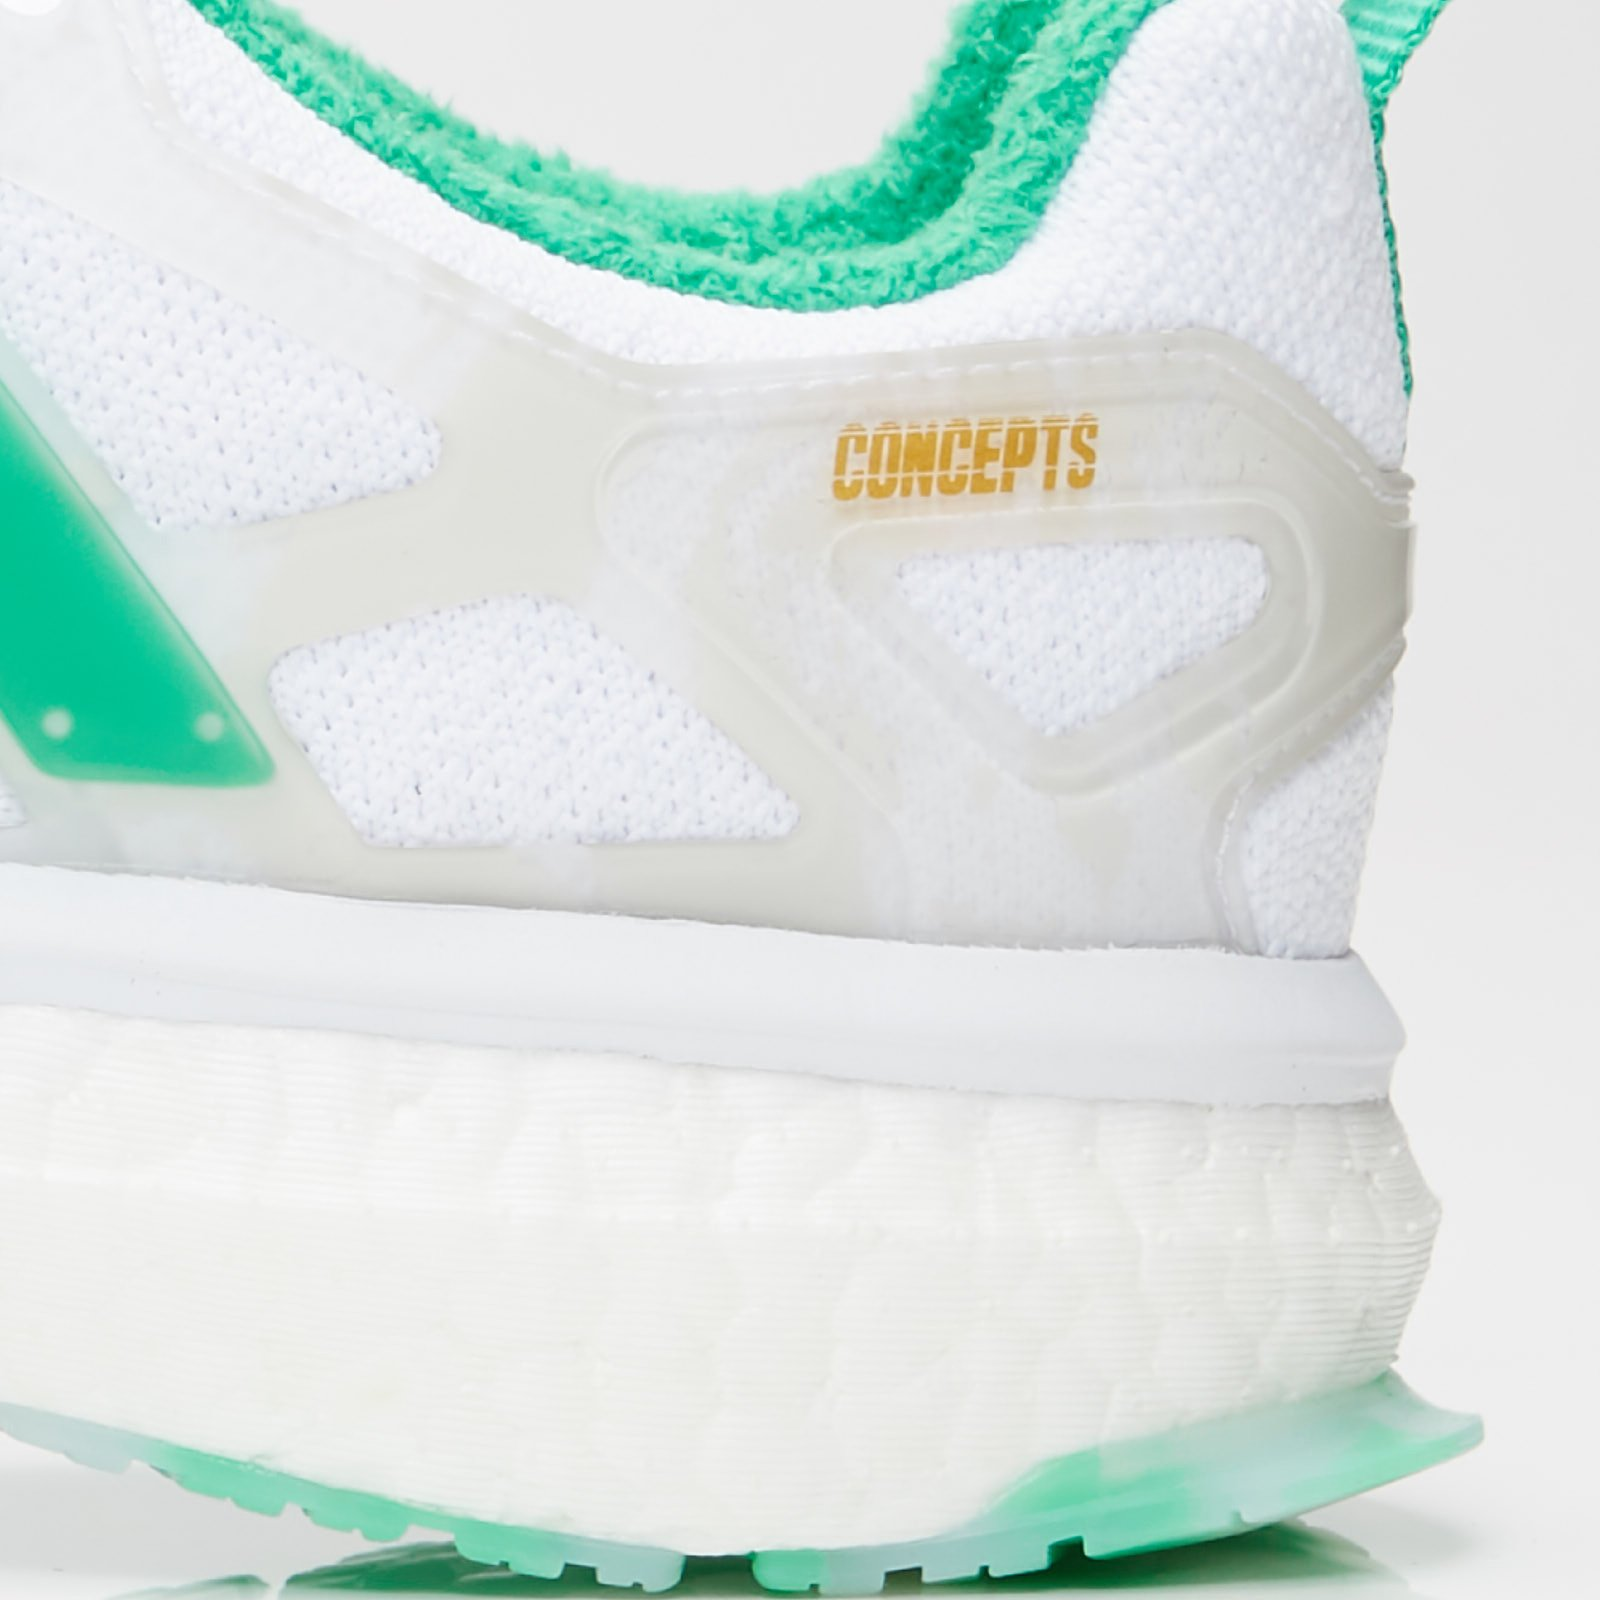 official photos ff60c 034b0 ... adidas Consortium Energy Boost CONCEPTS